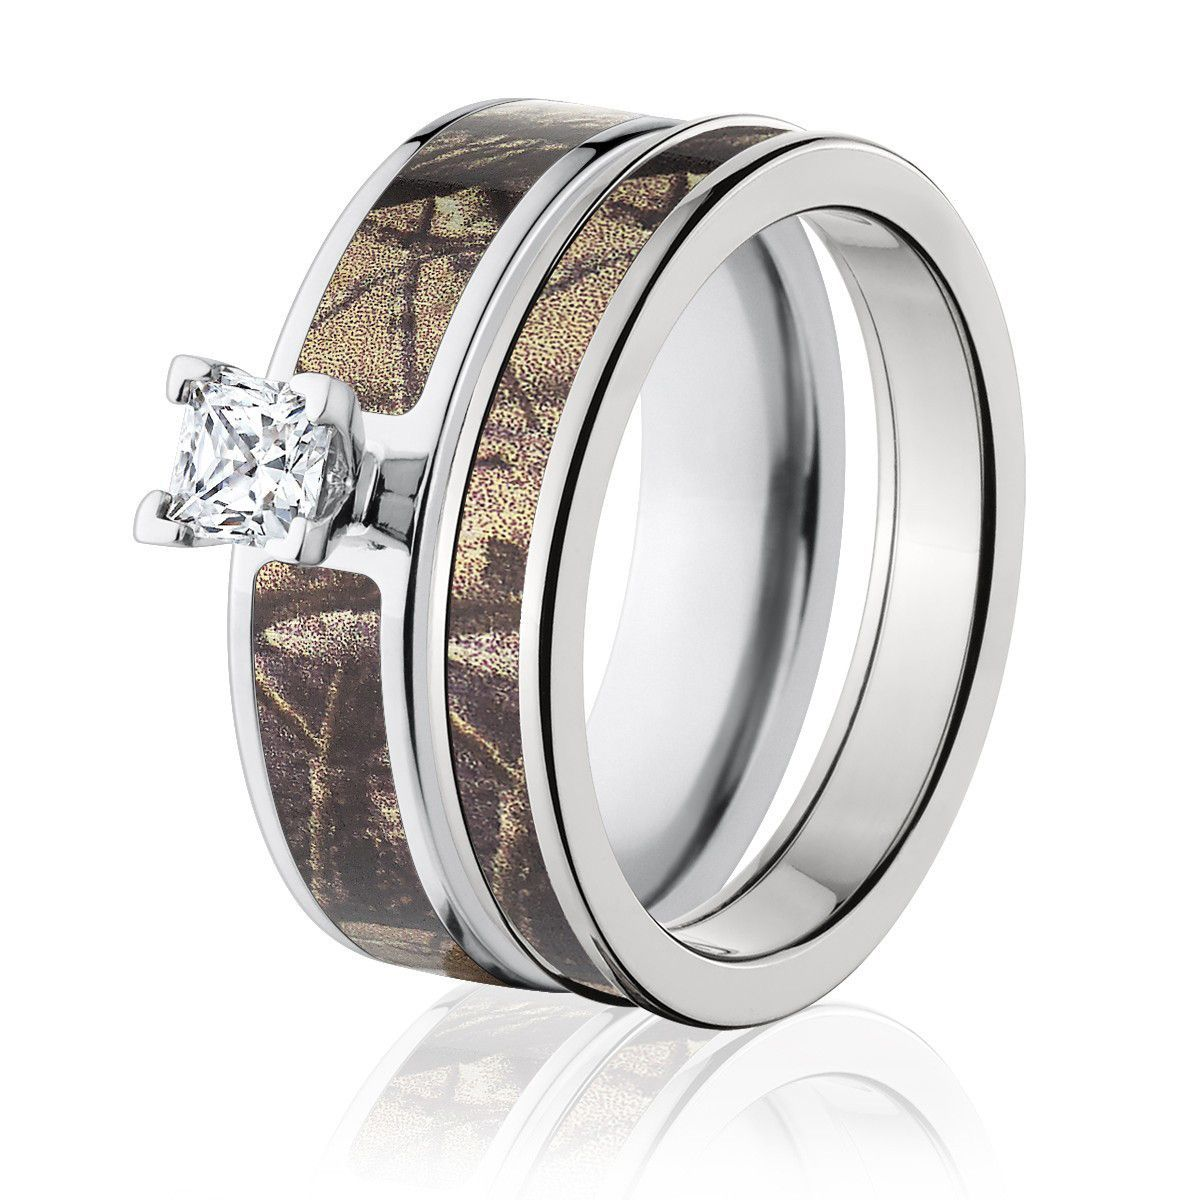 Realtree AP Camo Set for Her Camo engagement rings